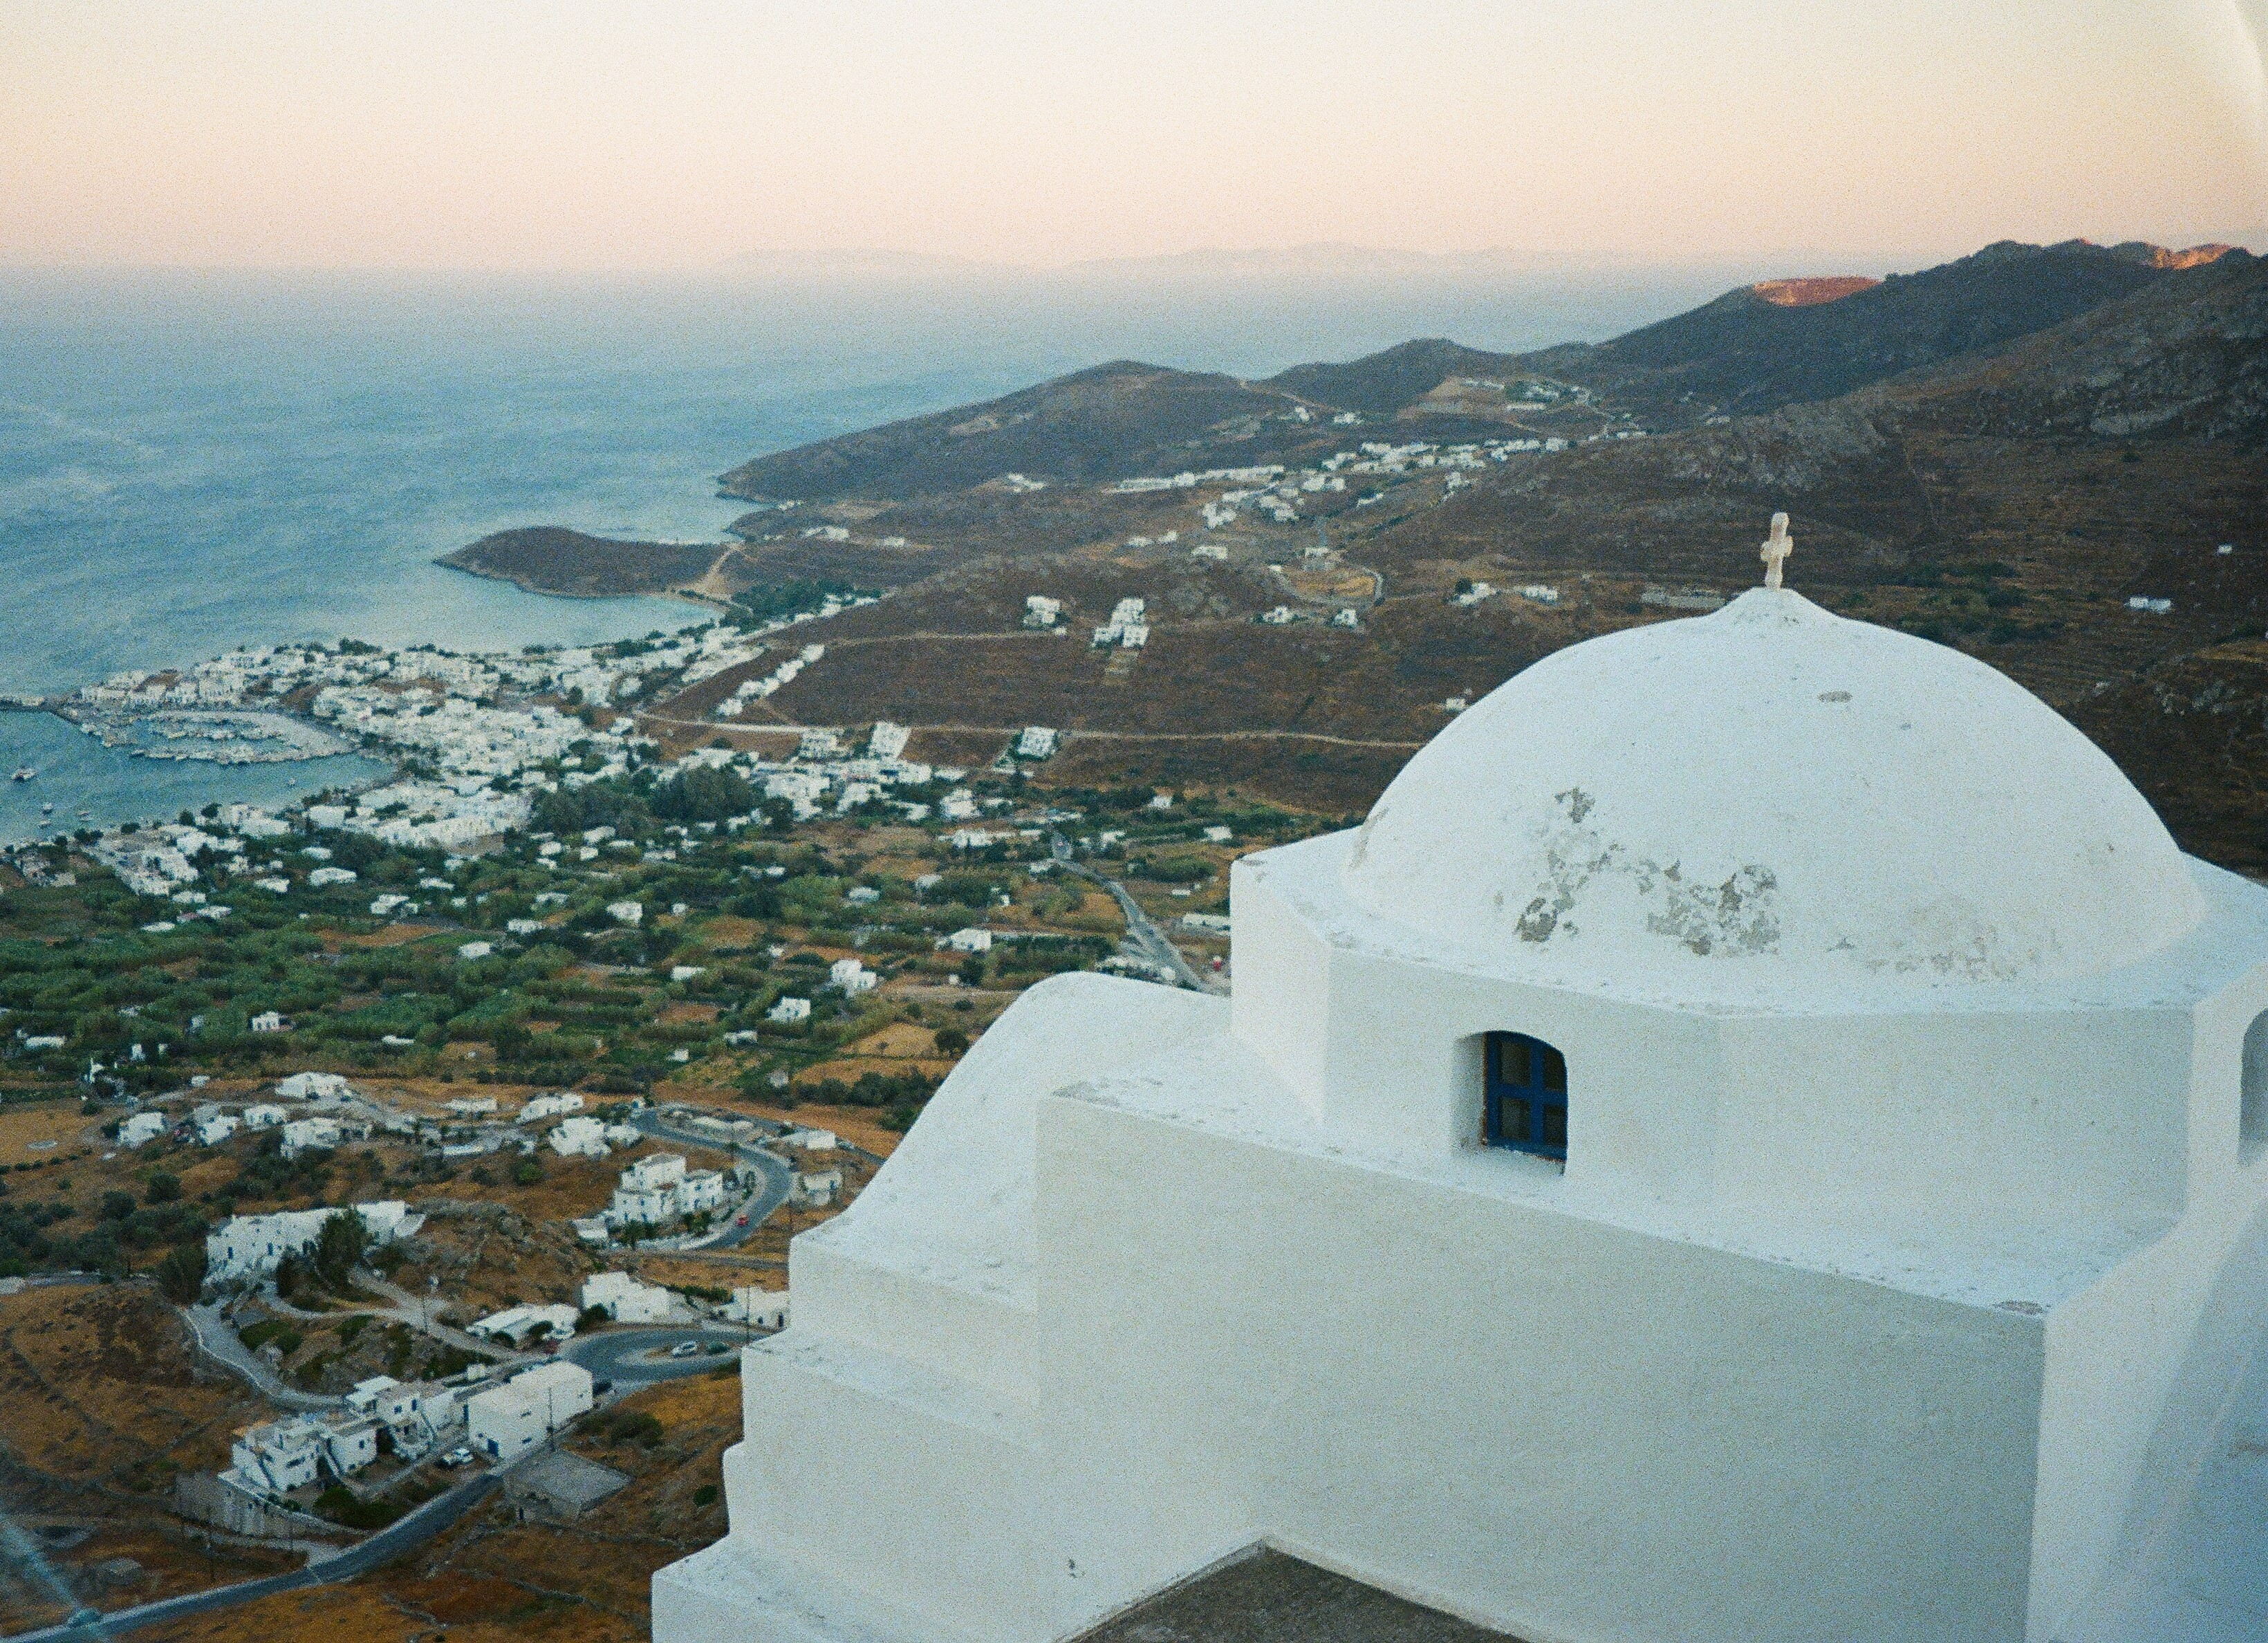 TRAVEL GUIDE TO SERIFOS, GREECE | ISLAND OF THE CYCLOPS